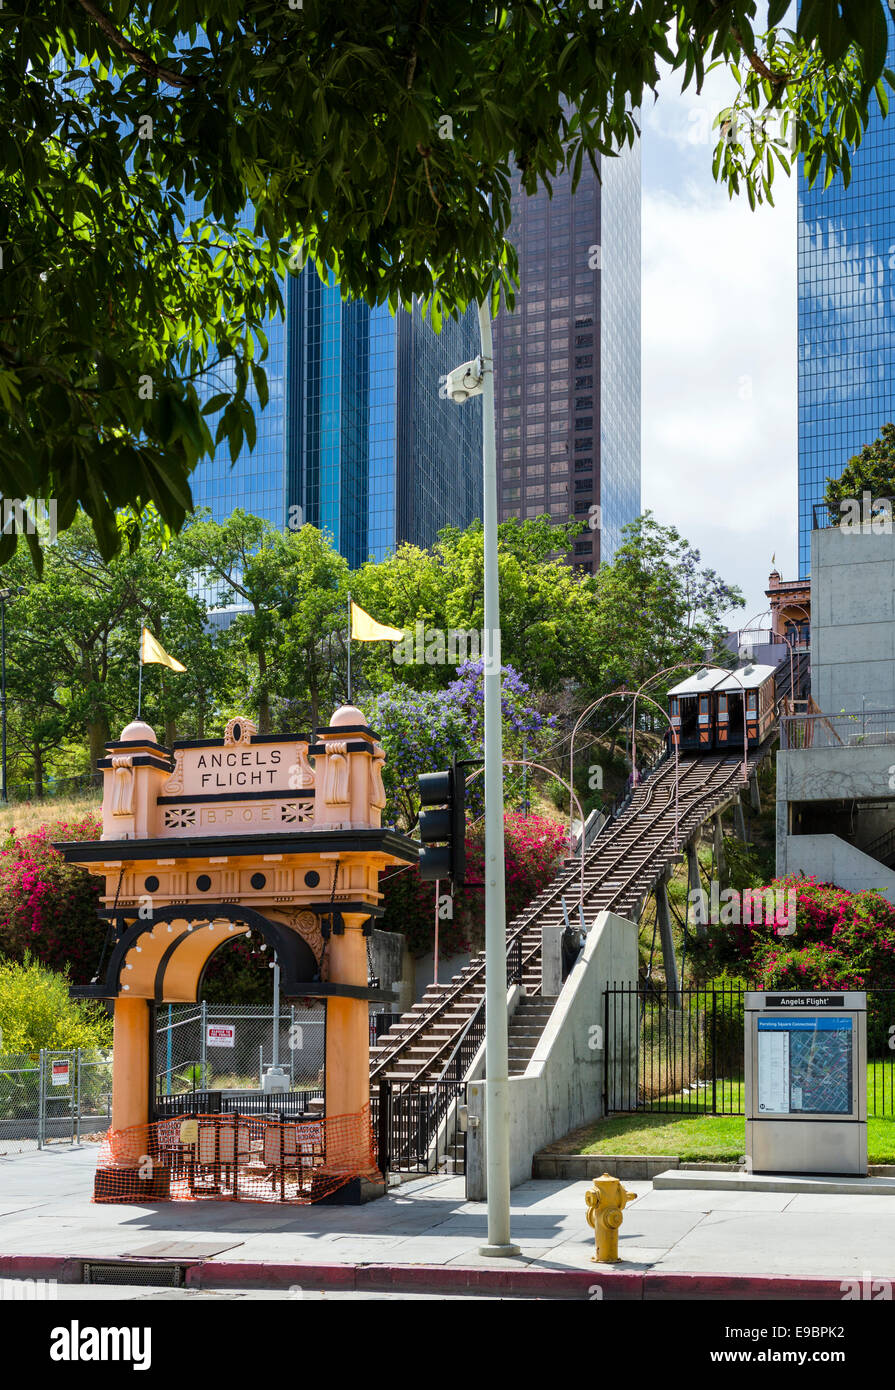 El Angels Flight, de Los Ángeles. Angel's Flight funicular entre Hill St y Plaza de California, Los Ángeles, Imagen De Stock